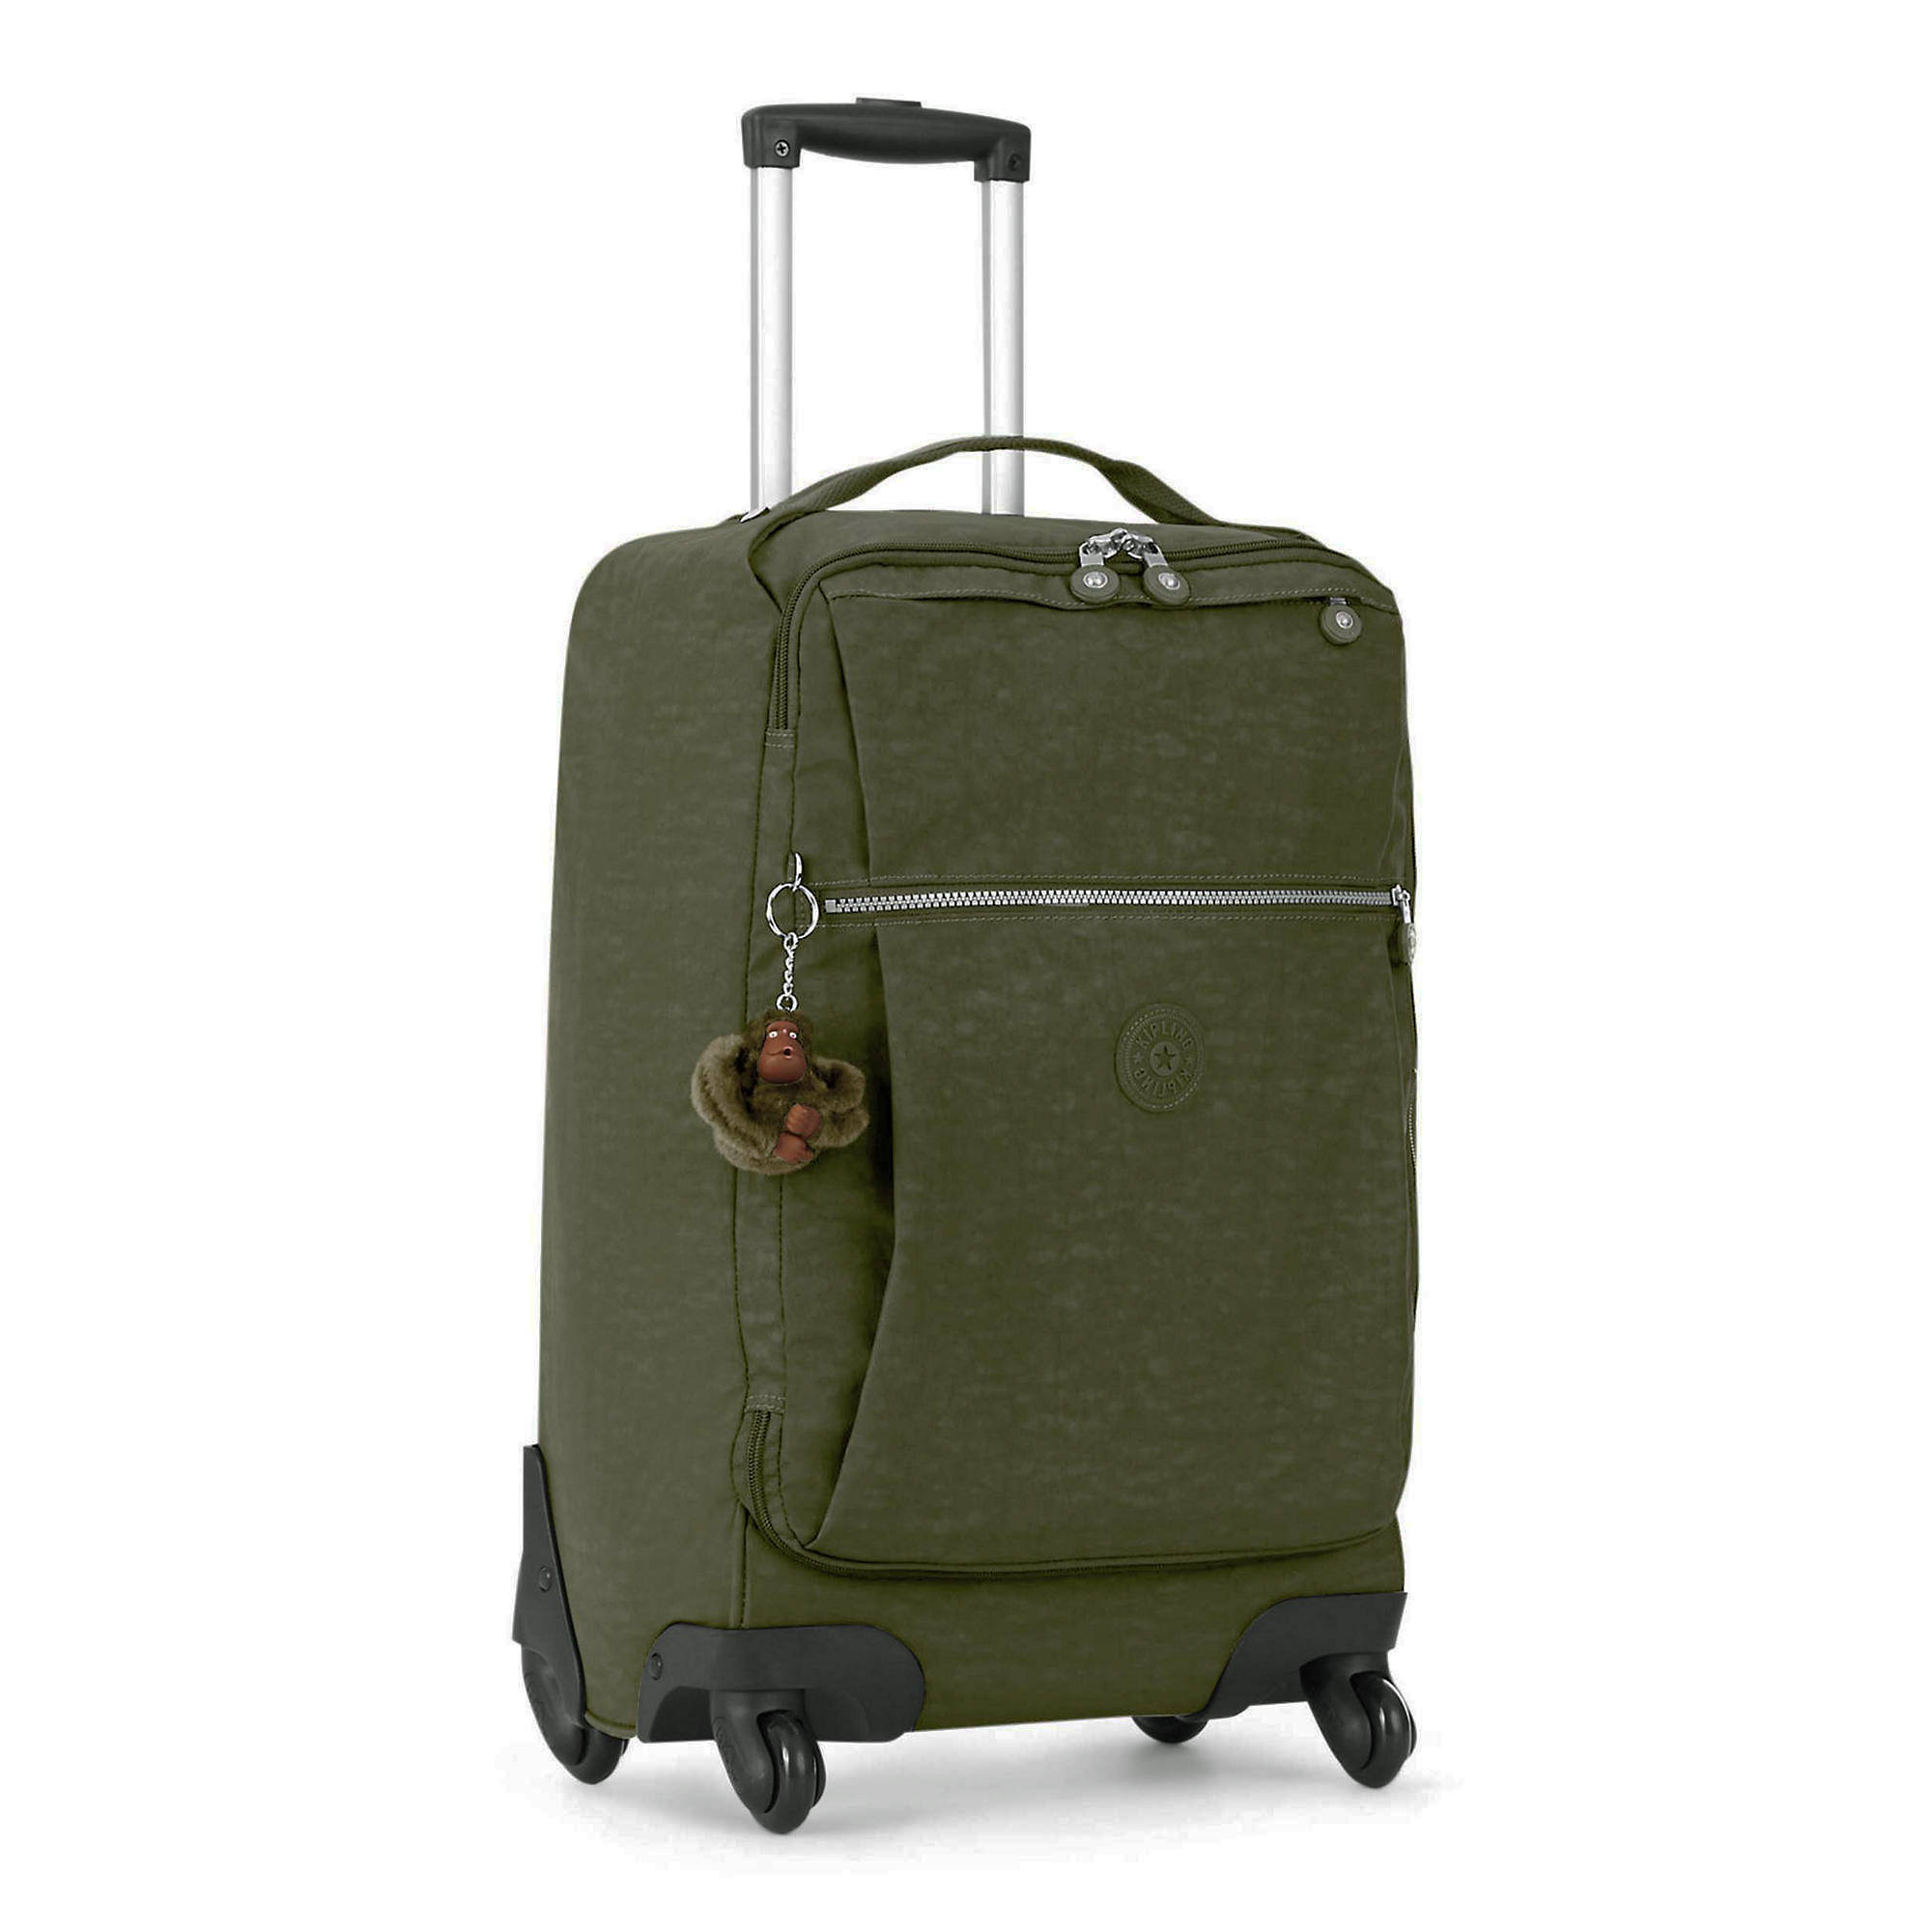 f7289ce88 Darcey Small Carry-On Rolling Luggage,Jaded Green,large